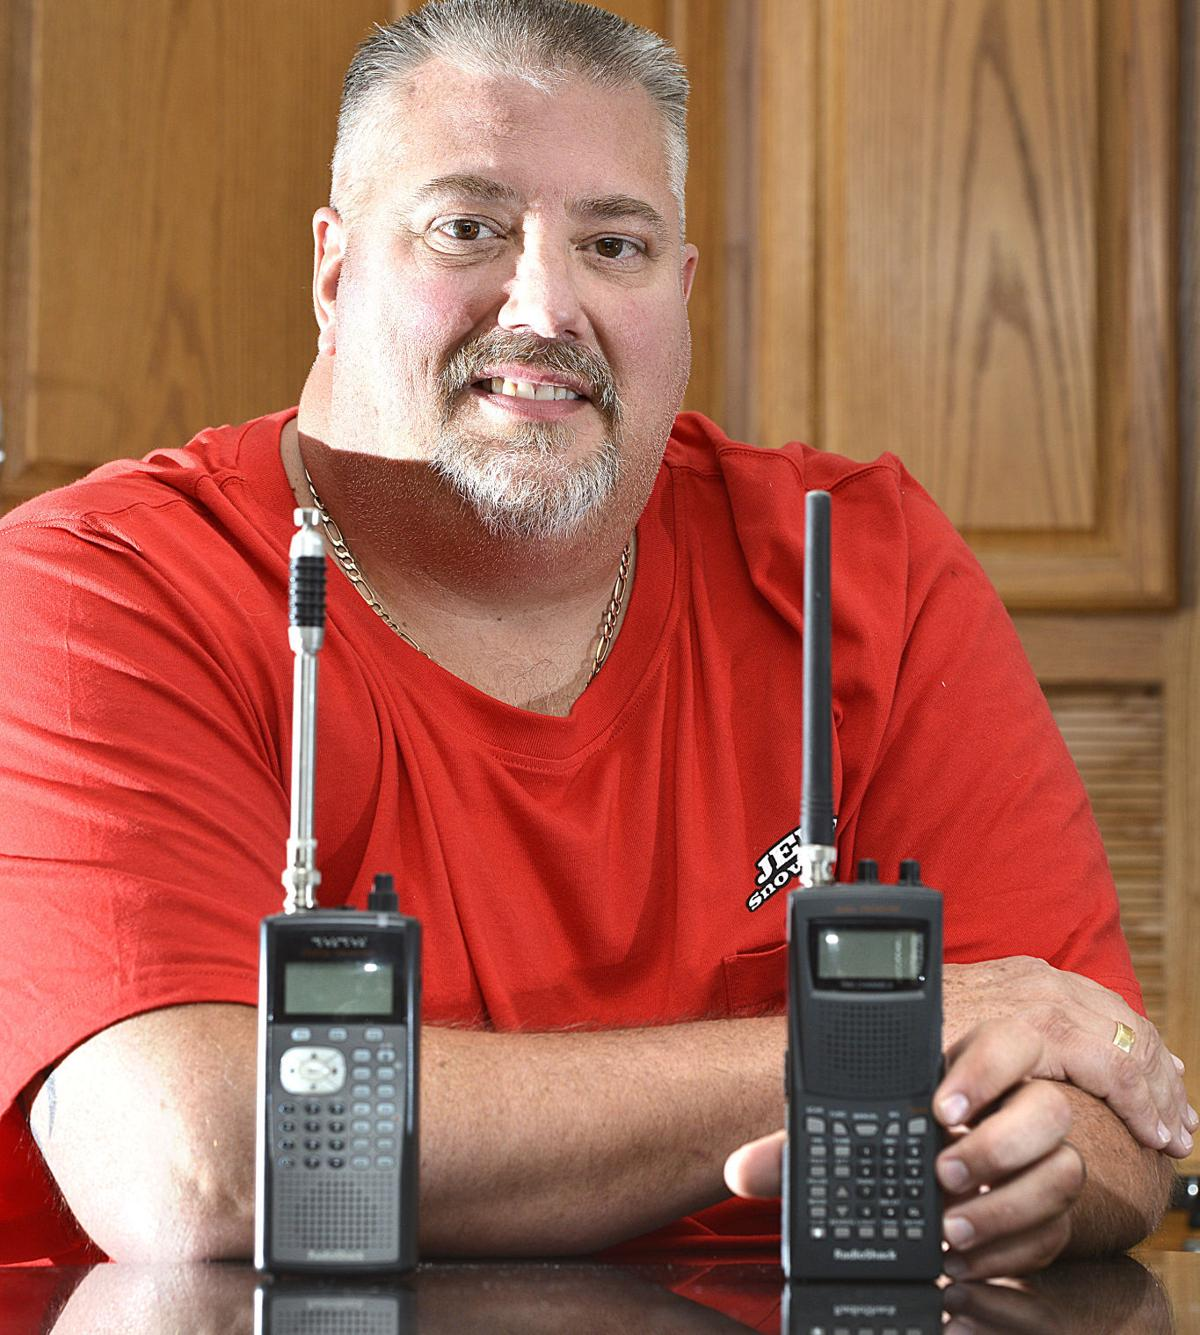 Silent police radio scanners